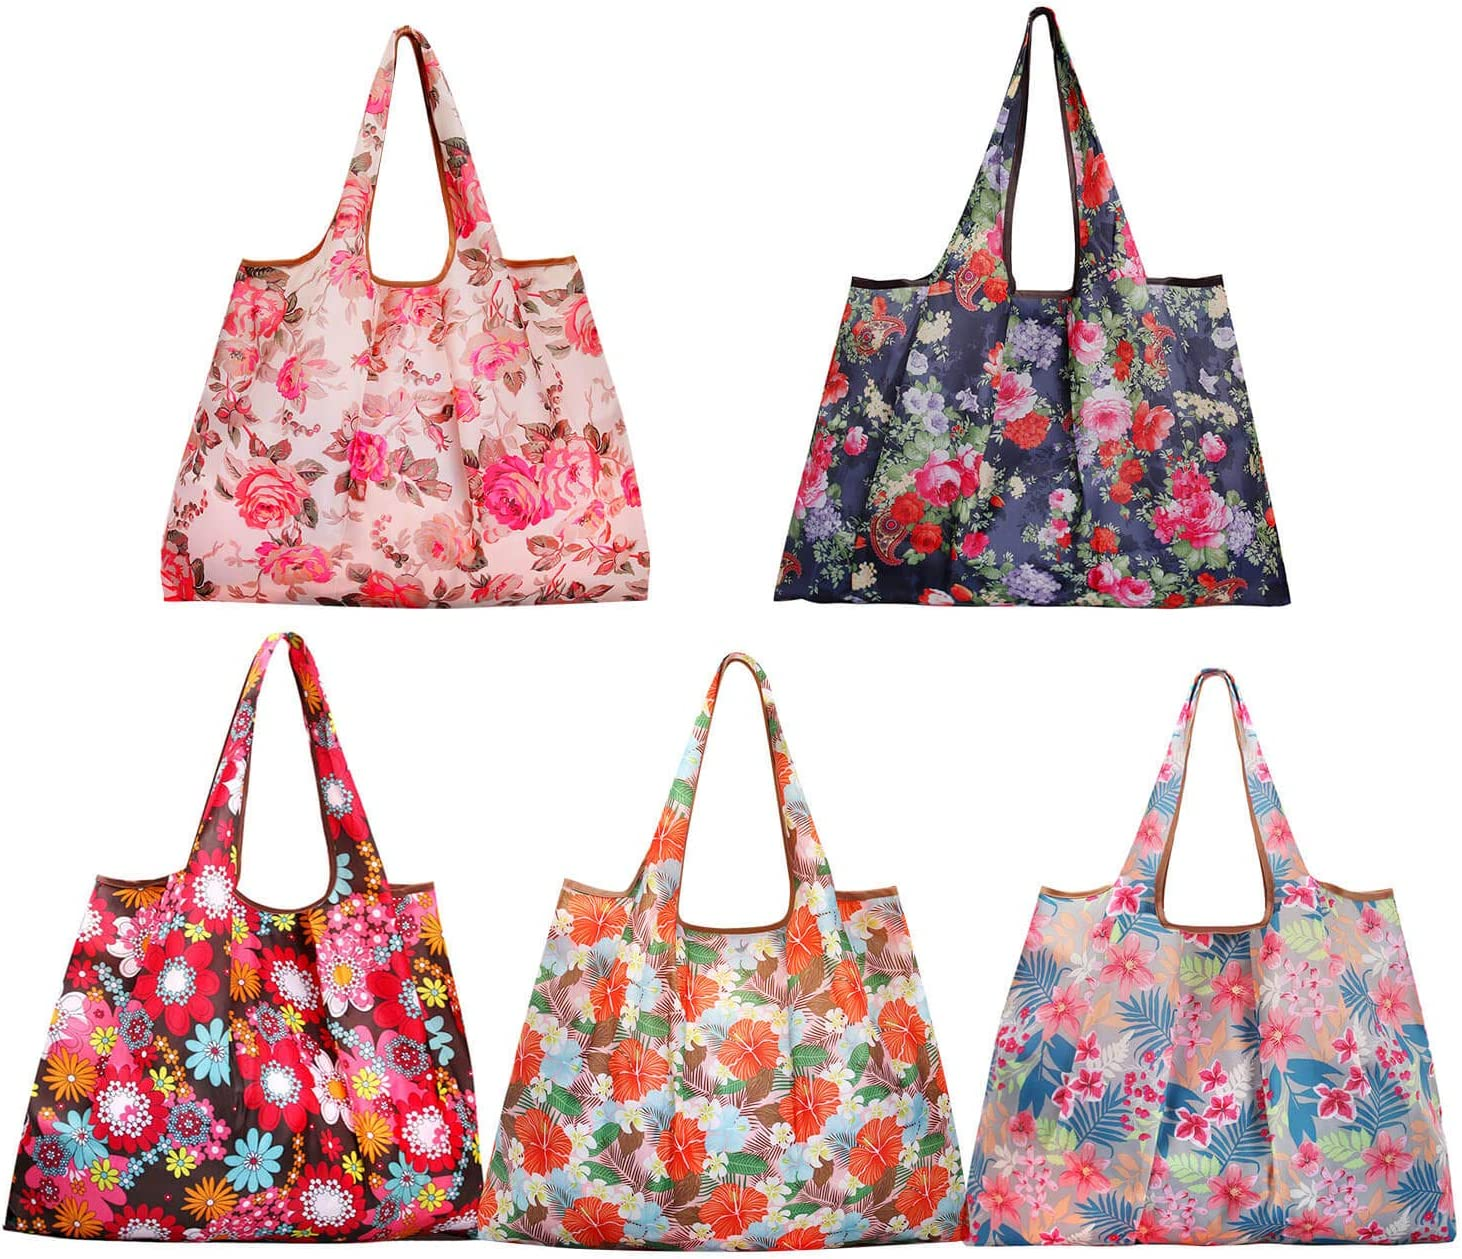 Reusable Shopping Bags,5 Pack Eco Friendly Large Floral Tote Bag Foldable into Attached Pouch Heavy Duty Nylon Groceries Bag Fits in Pocket